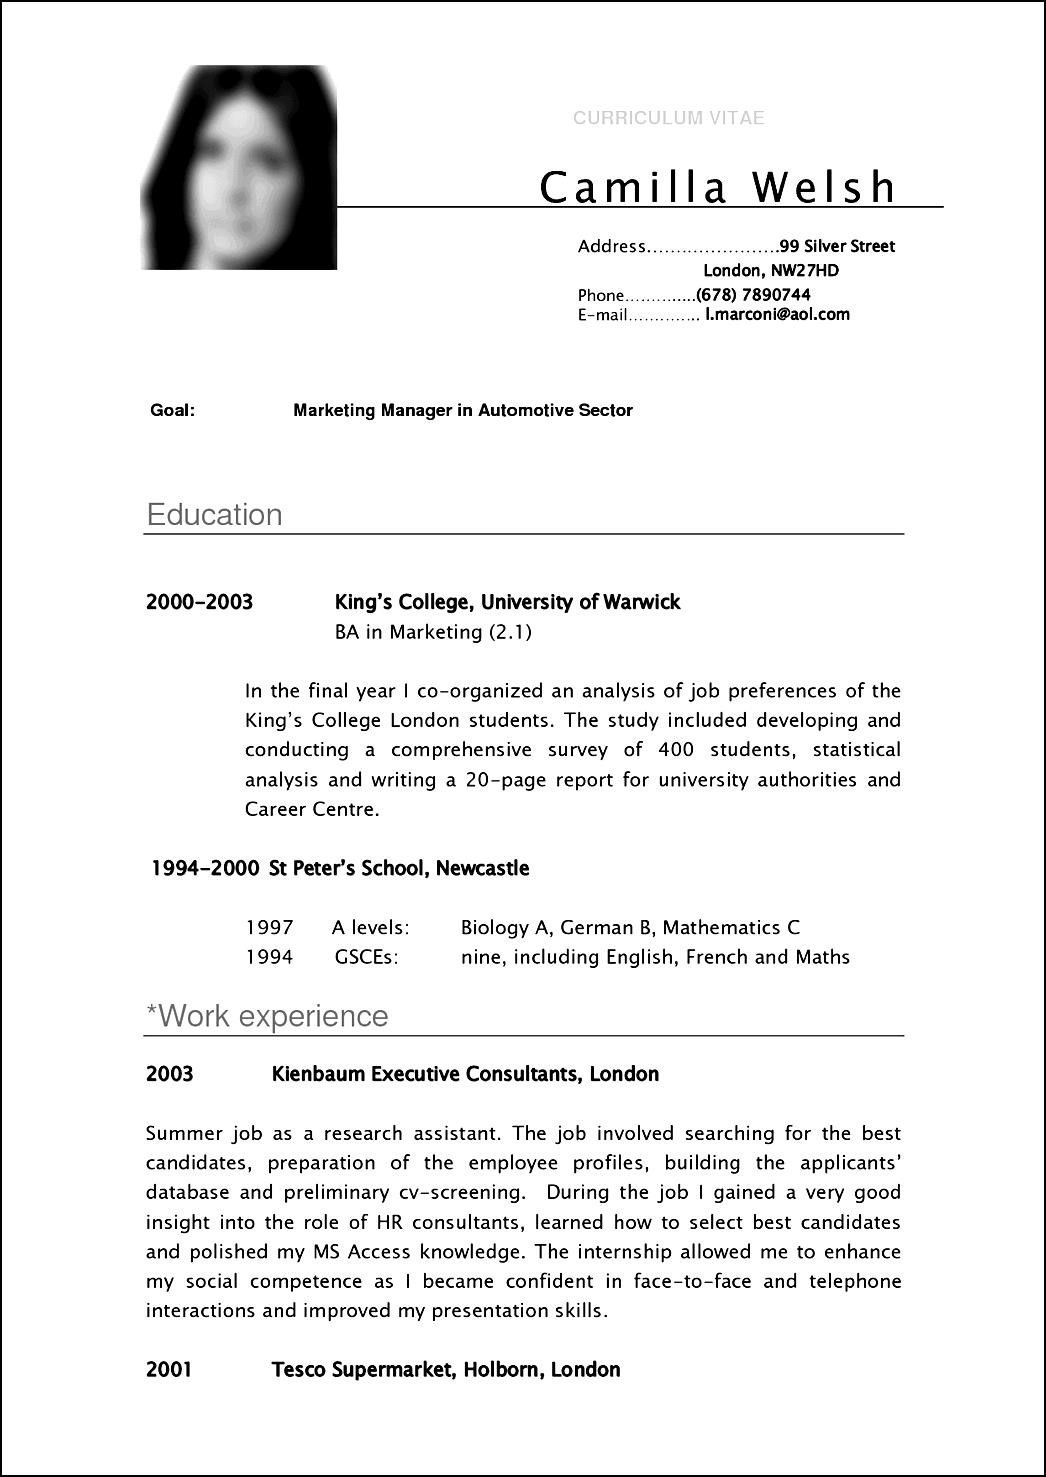 standard cv format in resume writing resume examples standard cv format in resume format in tips and advice moving2 to write a